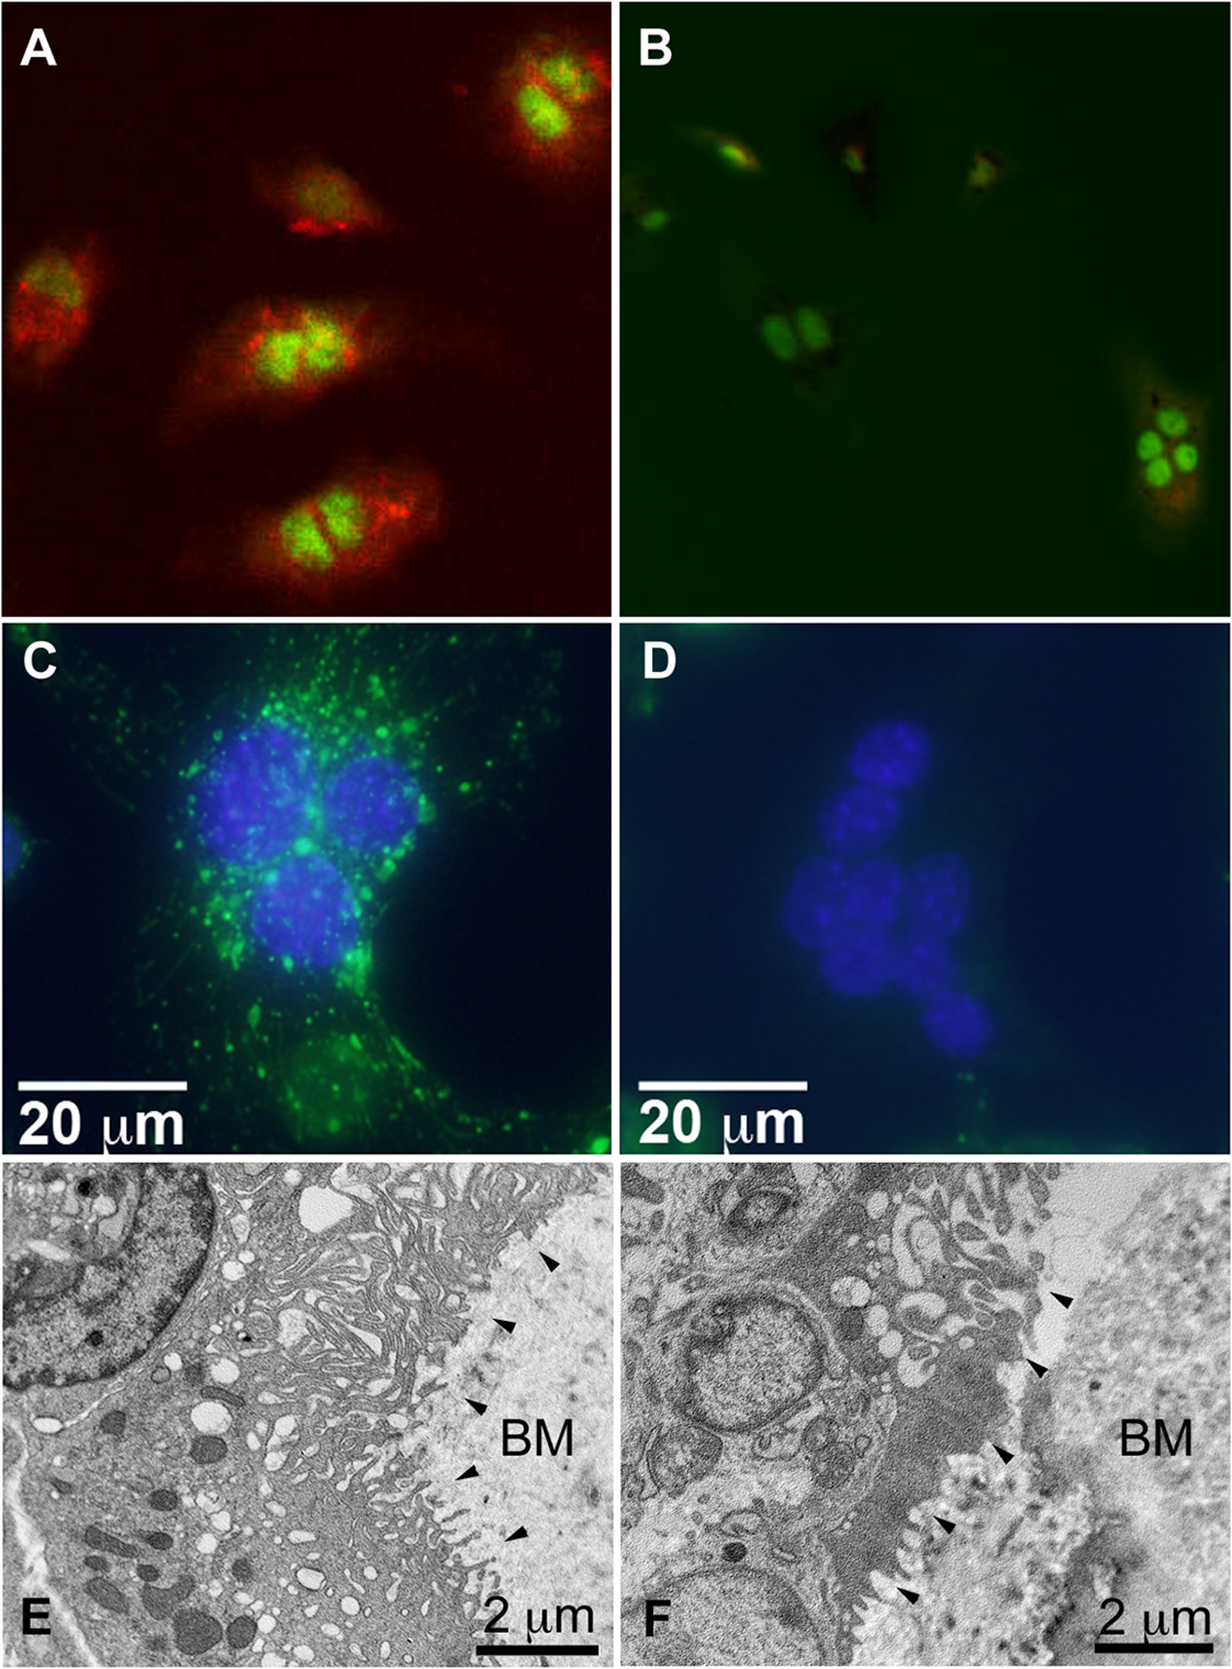 Snx10-deficient osteoclasts are unable to acidify have impaired endosomal pathways, and have defective ruffled borders.